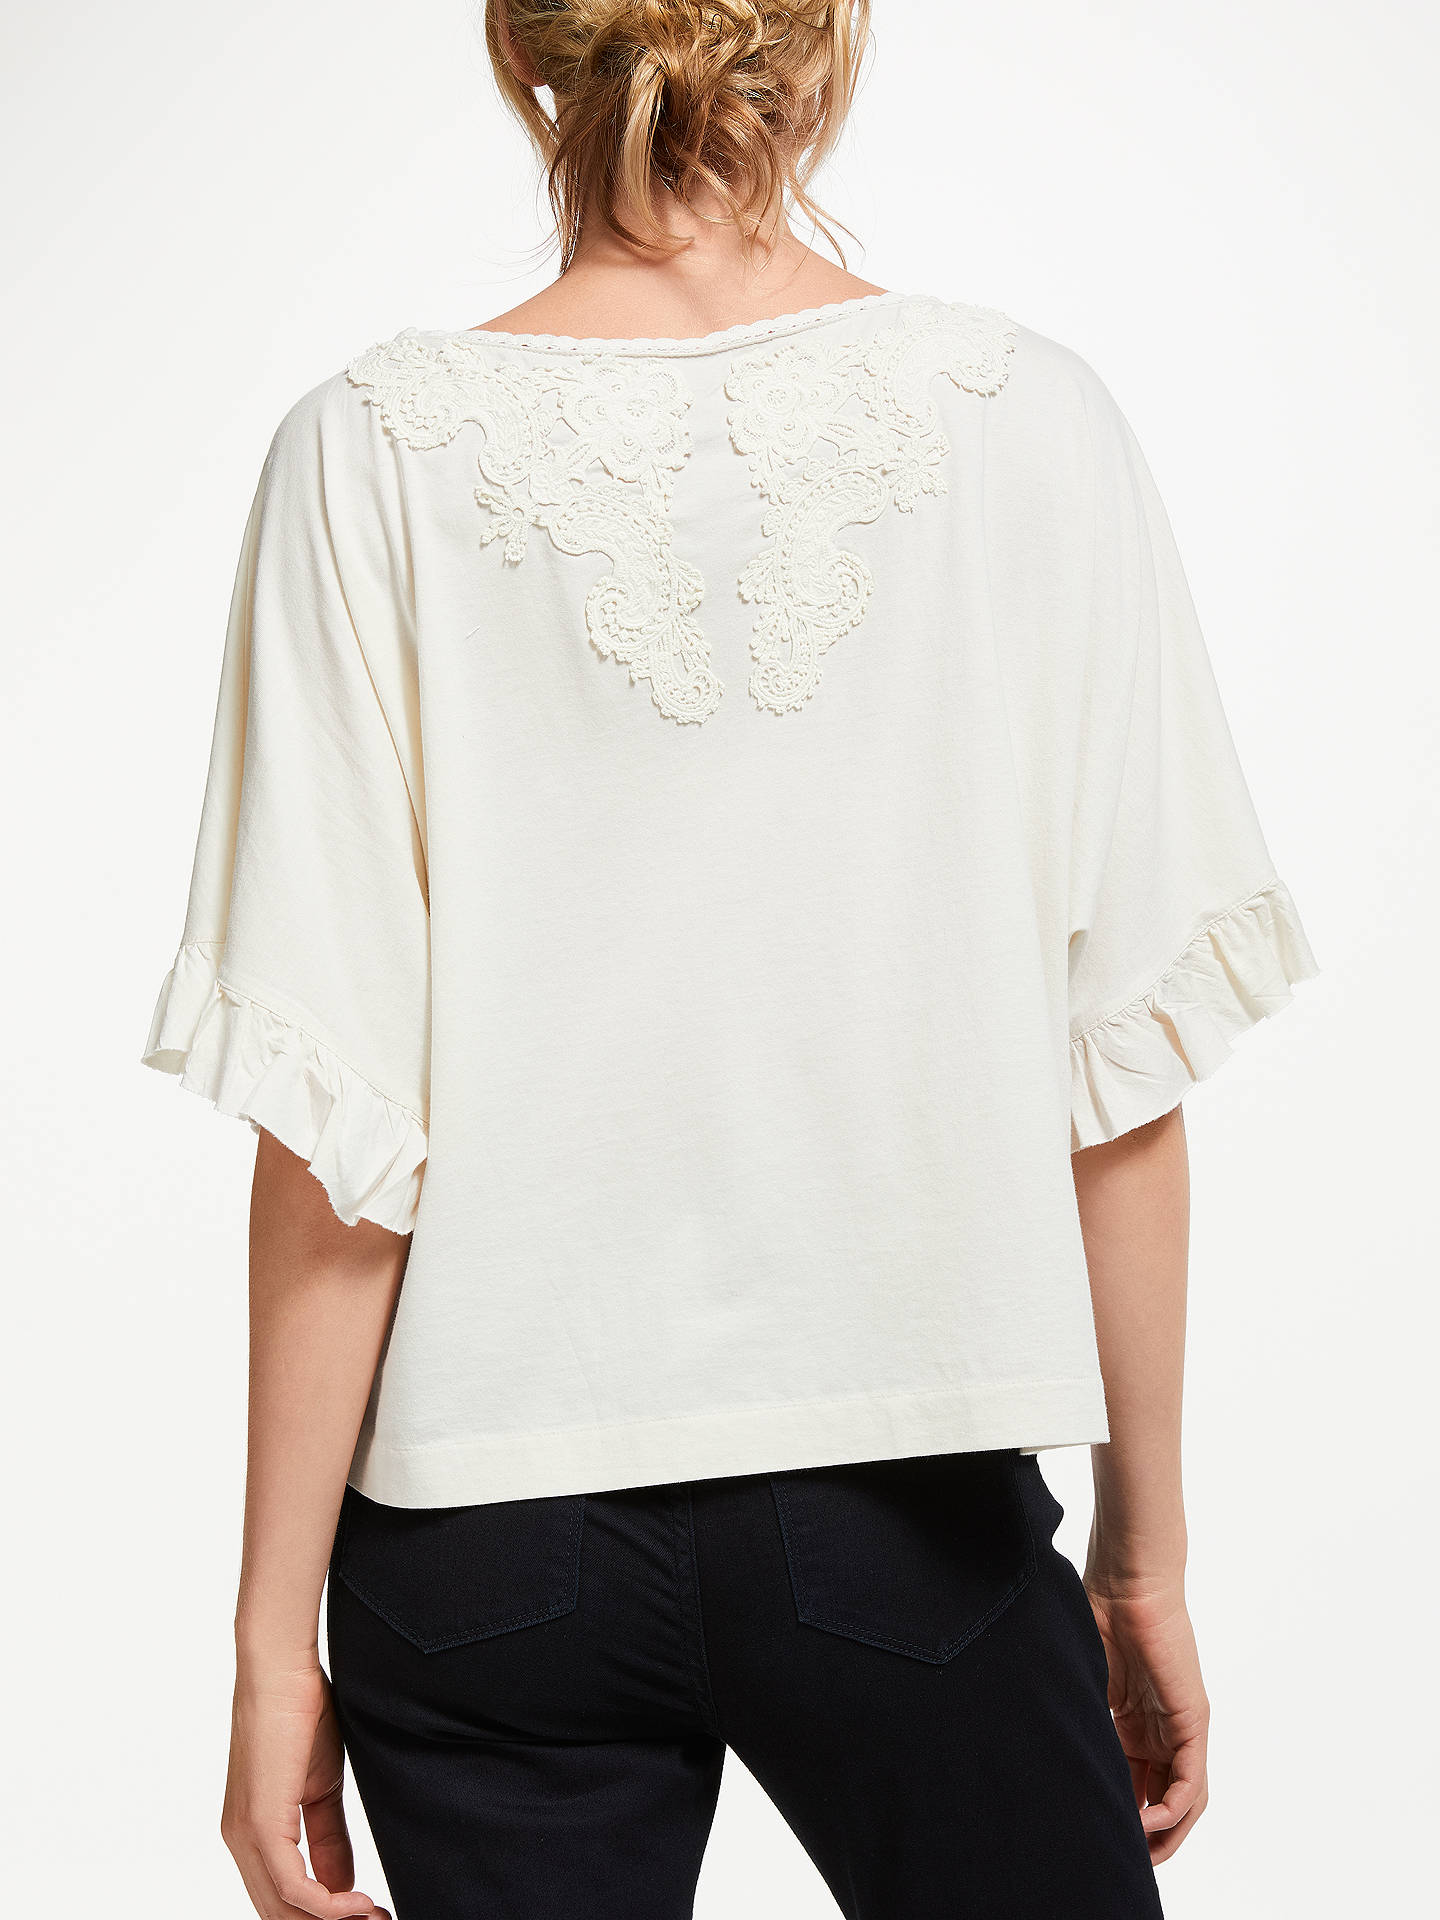 BuyPolo Ralph Lauren Lace Trim Top, Antique Cream, M Online at johnlewis.com